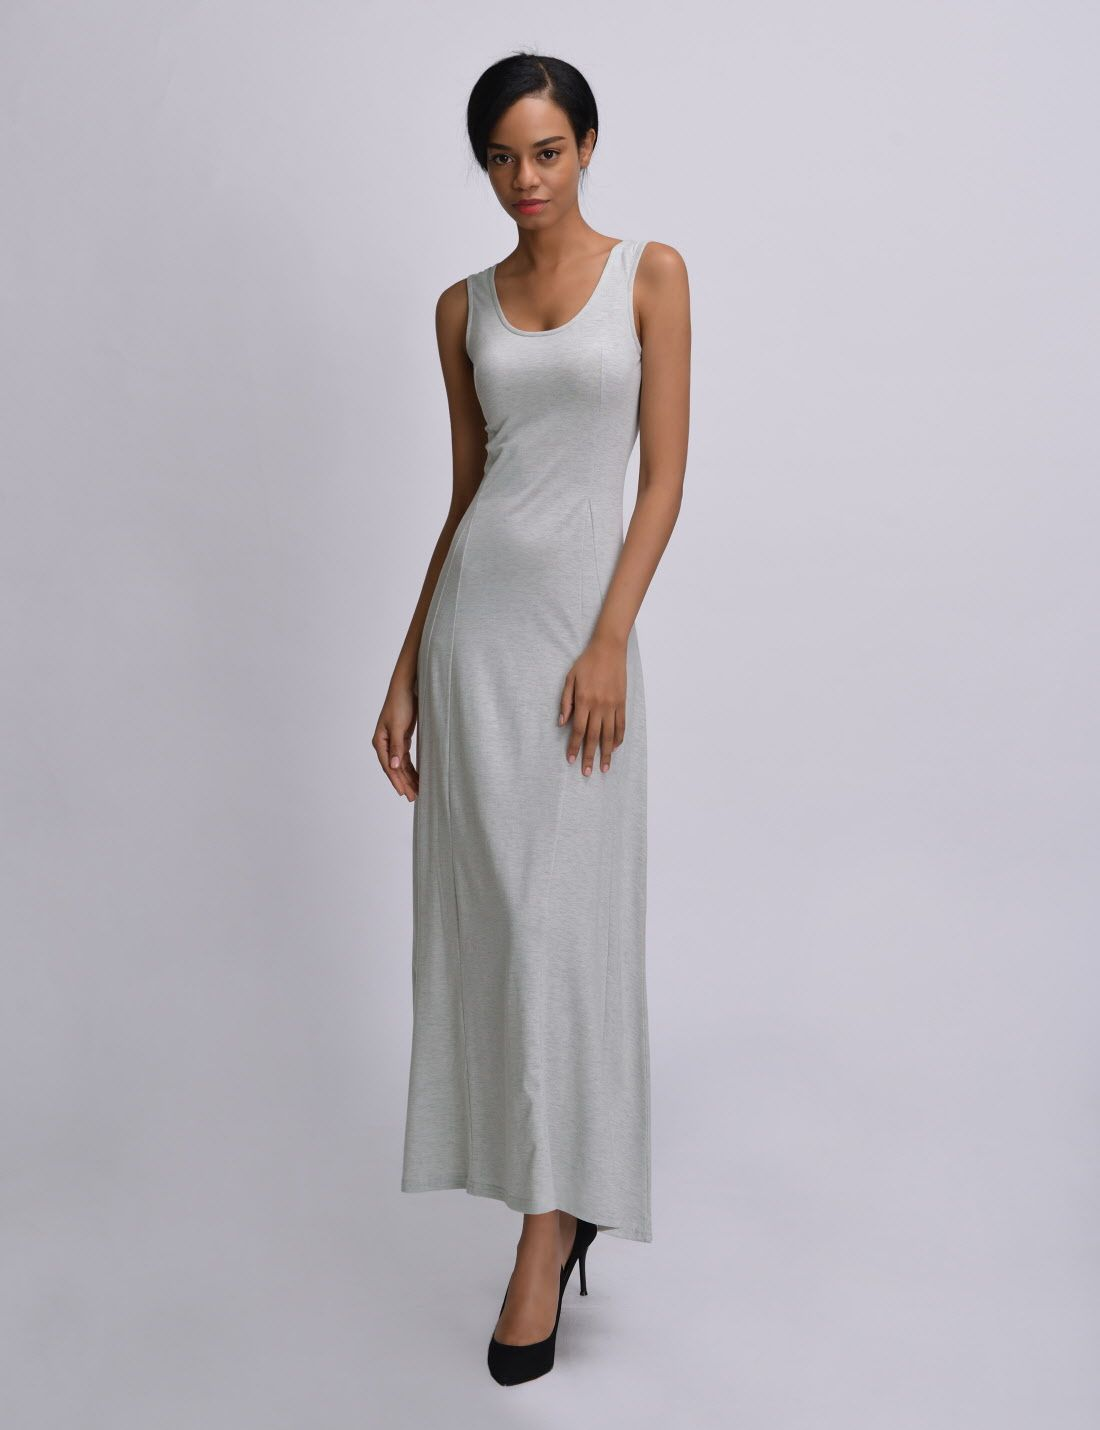 Nkwnld642 Thelees Womens Fitted One Piece Soft Stretchy Sleeveless Maxi Dress Dresses Sleeveless Maxi Dress Womens Dresses [ 1430 x 1100 Pixel ]